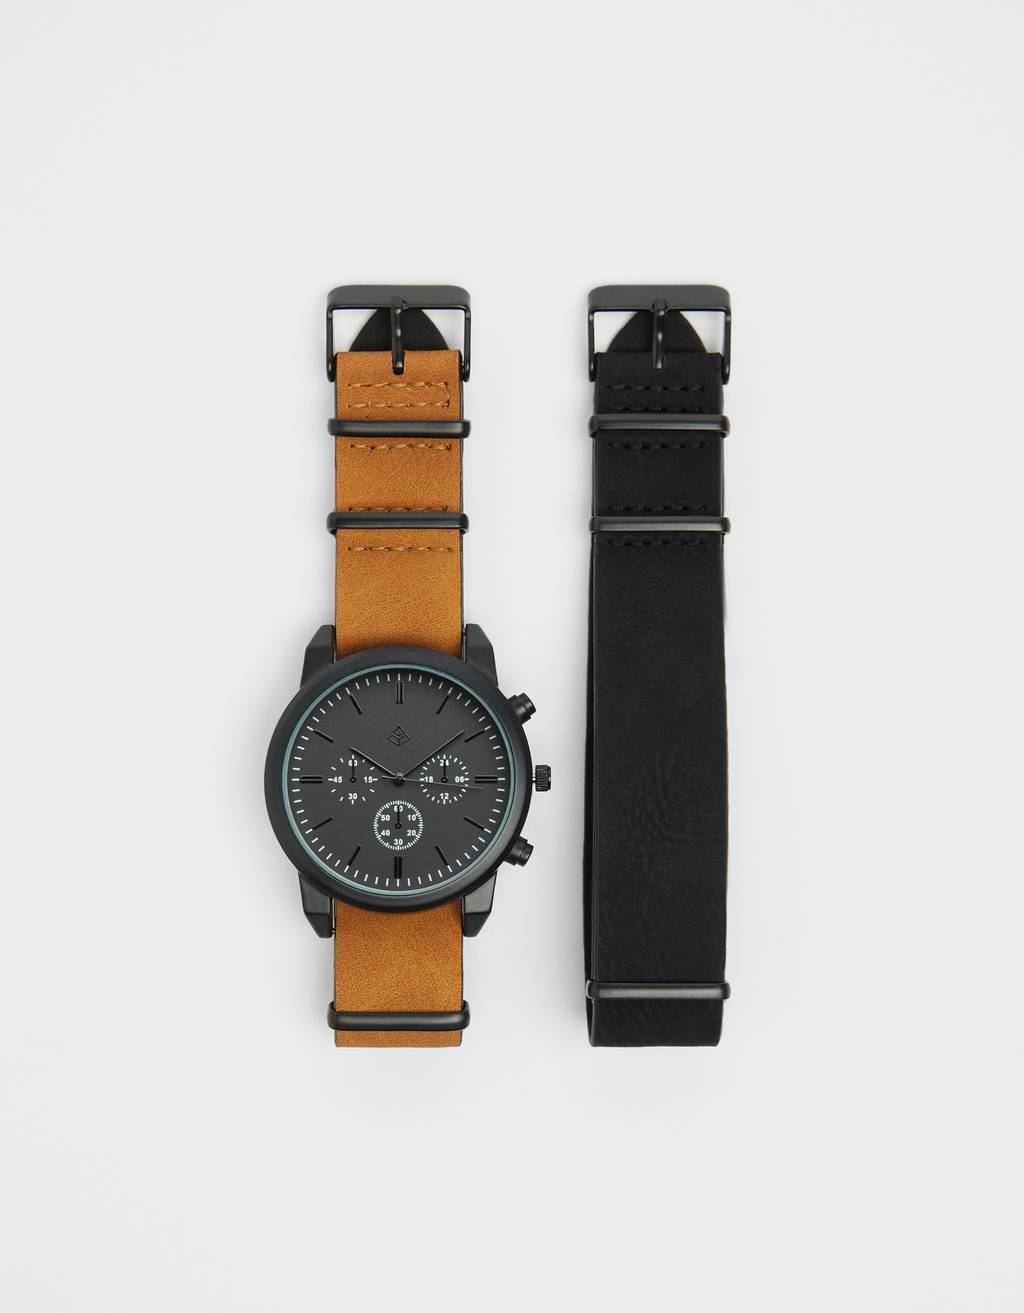 Watch with interchangeable strap